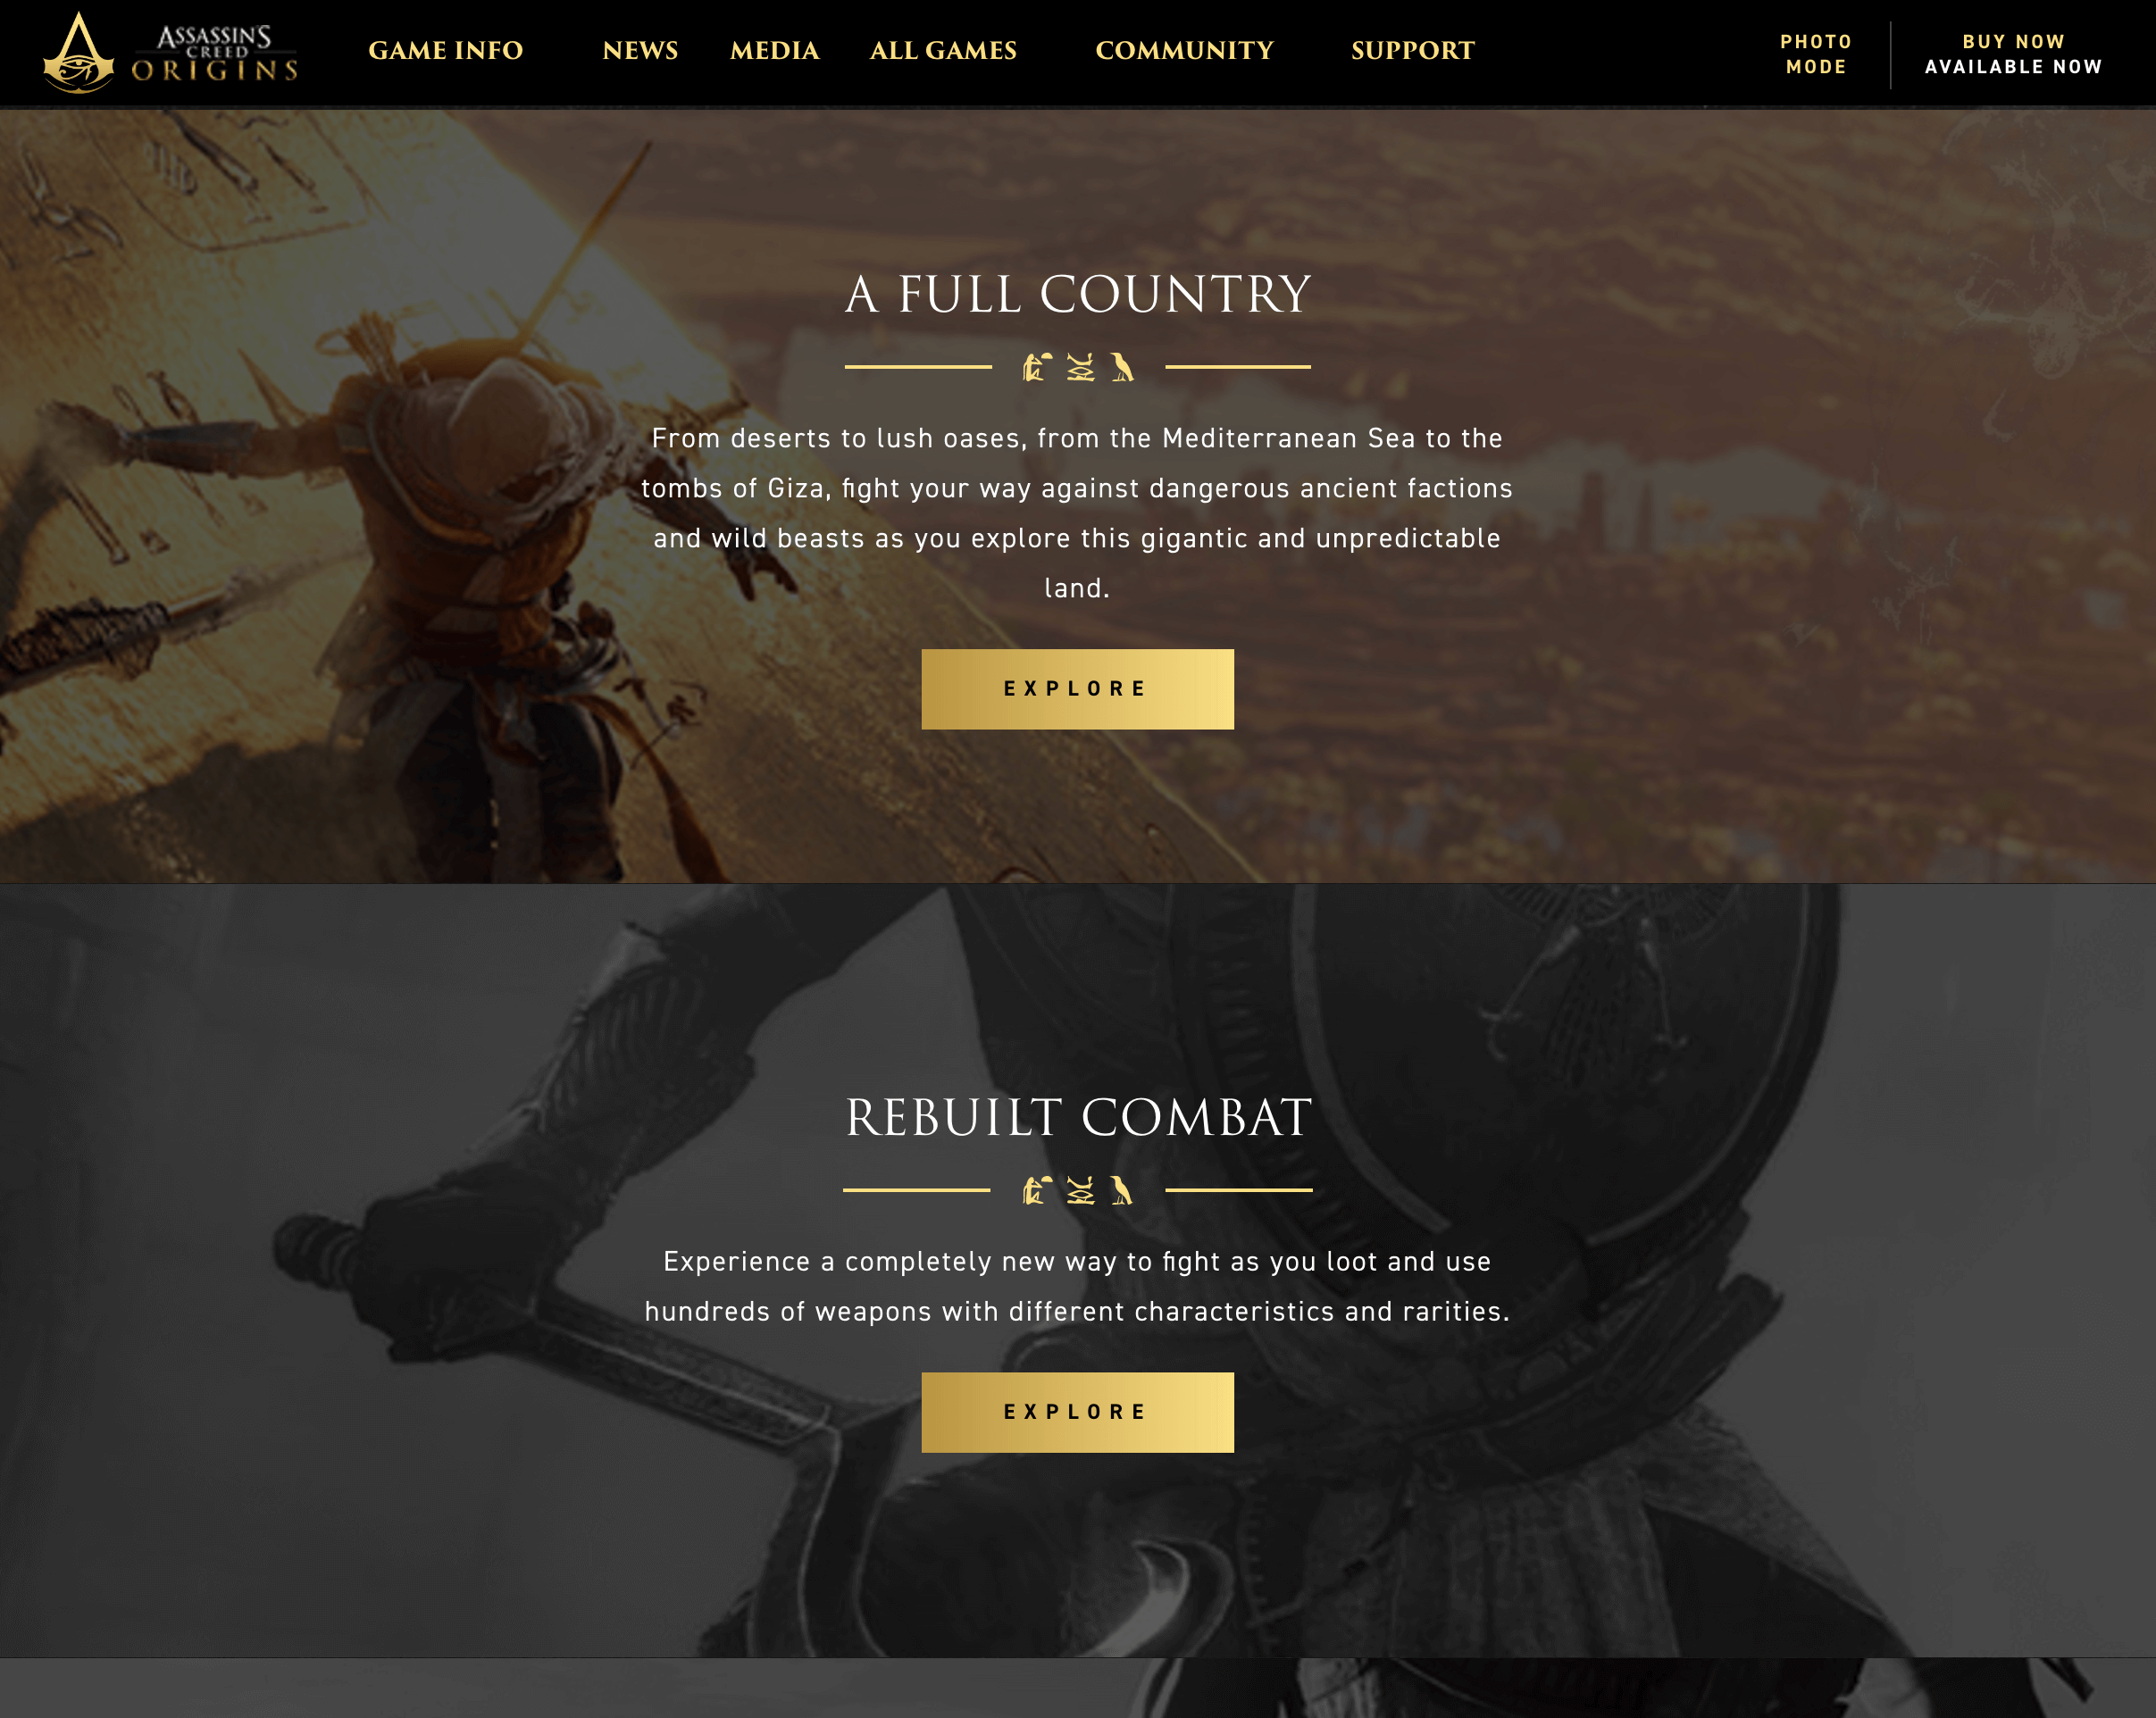 Another screenshot of Ubisoft's website